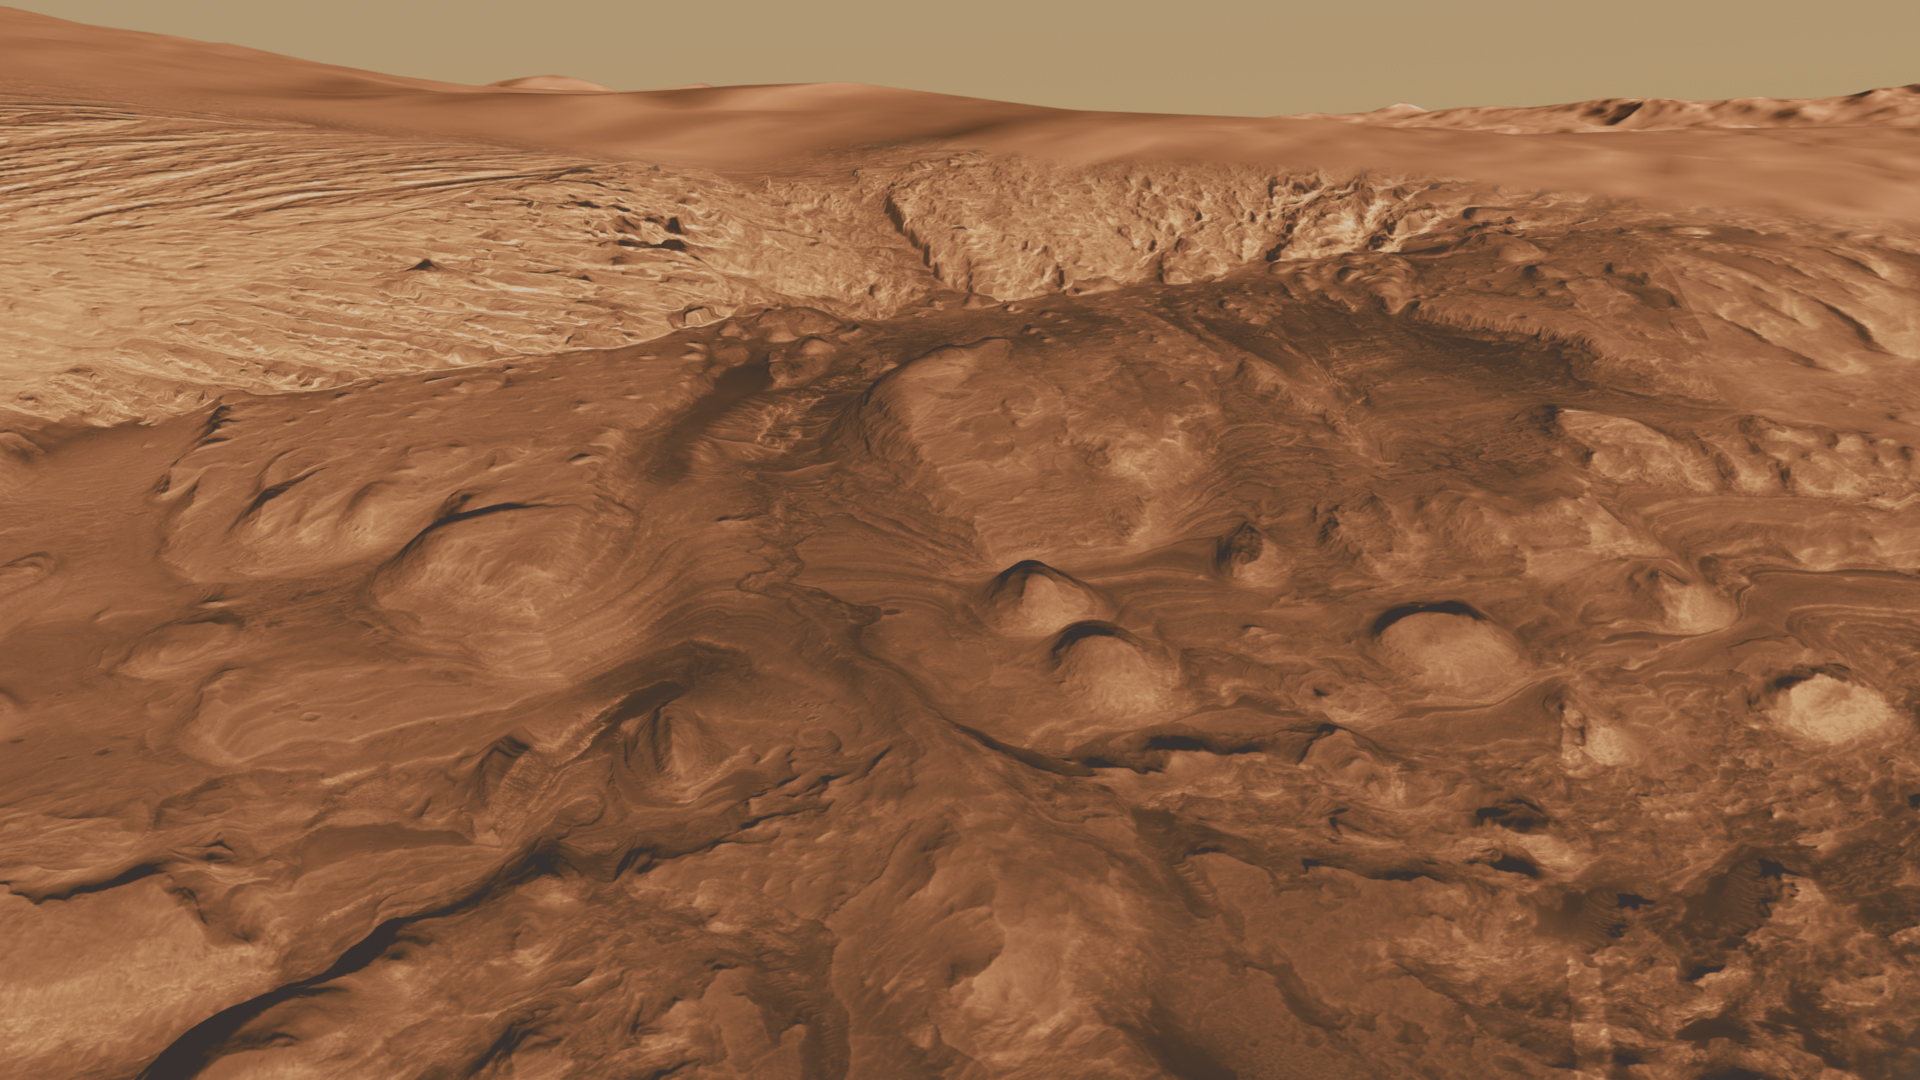 This oblique view of the mound in Gale crater shows several different rock types of interest to the Mars Science Laboratory mission.